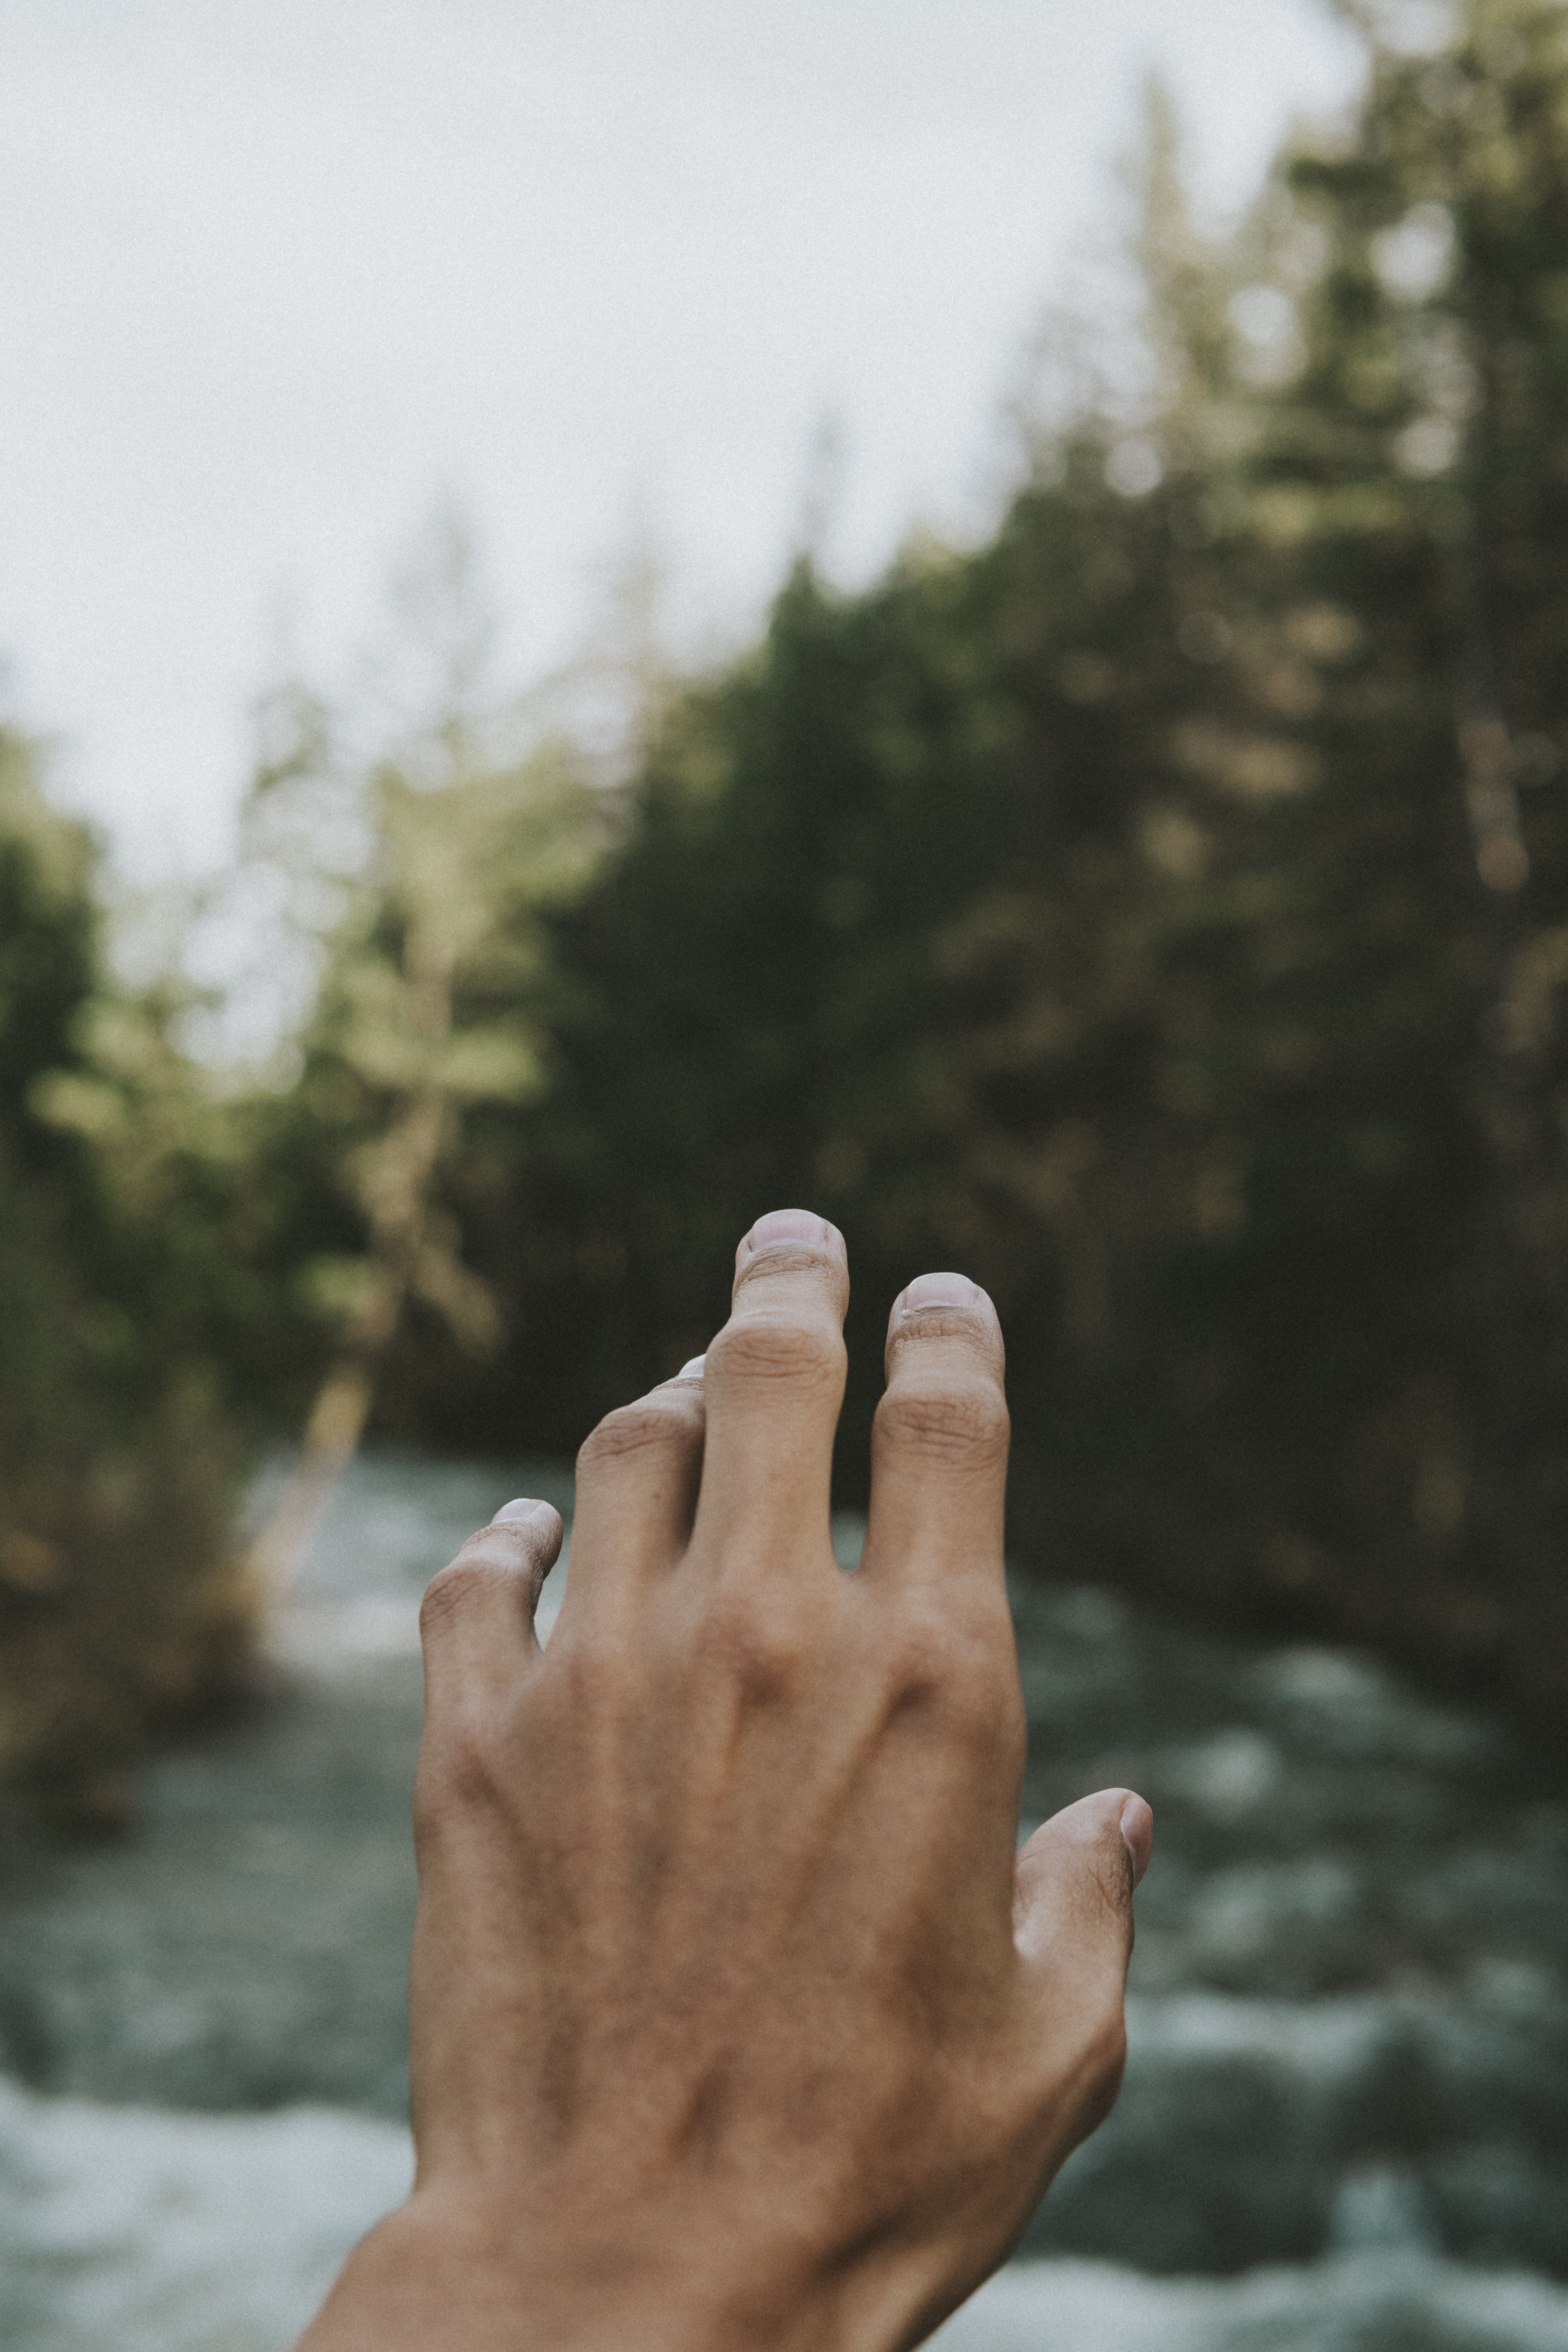 person's hand in shallow focus